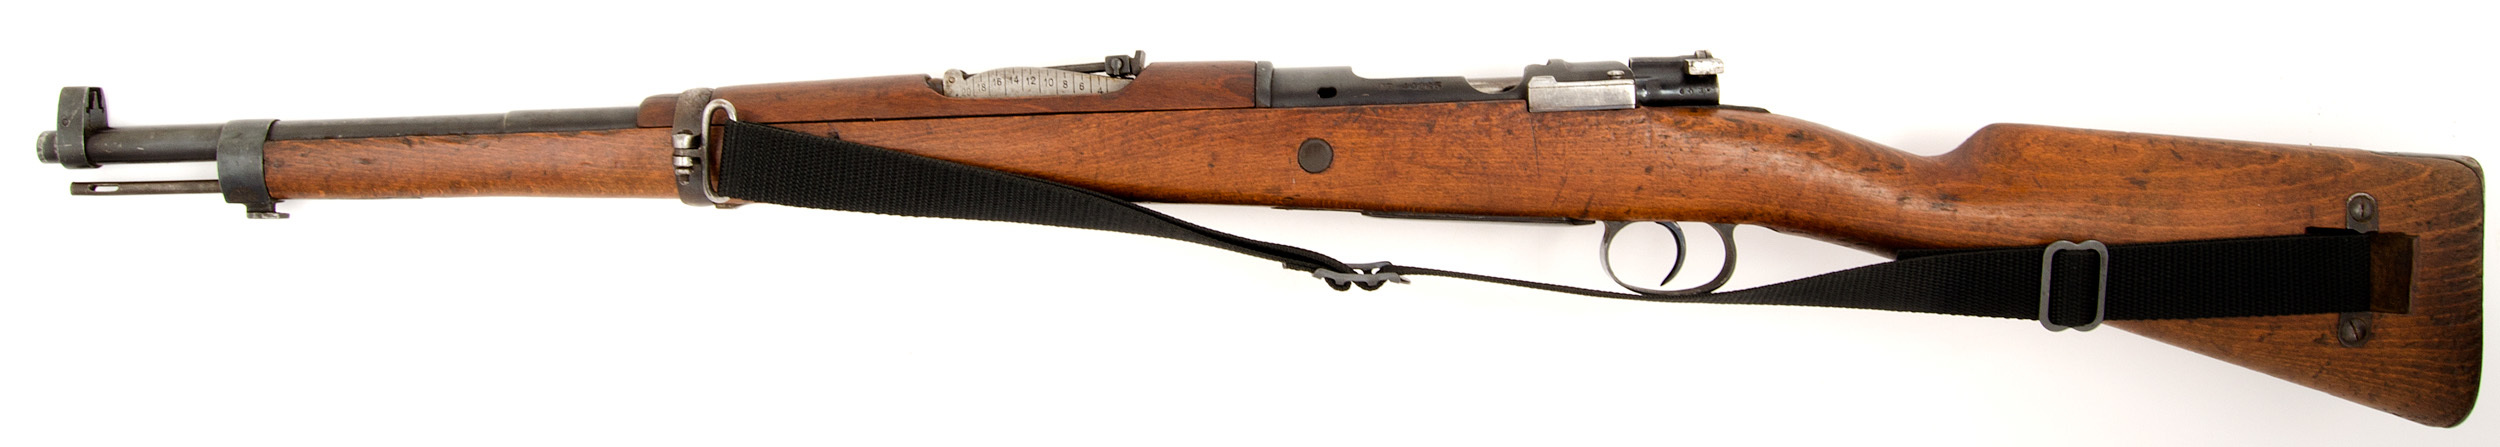 Spanish M-1916 Mauser in  308 | Cowan's Auction House: The